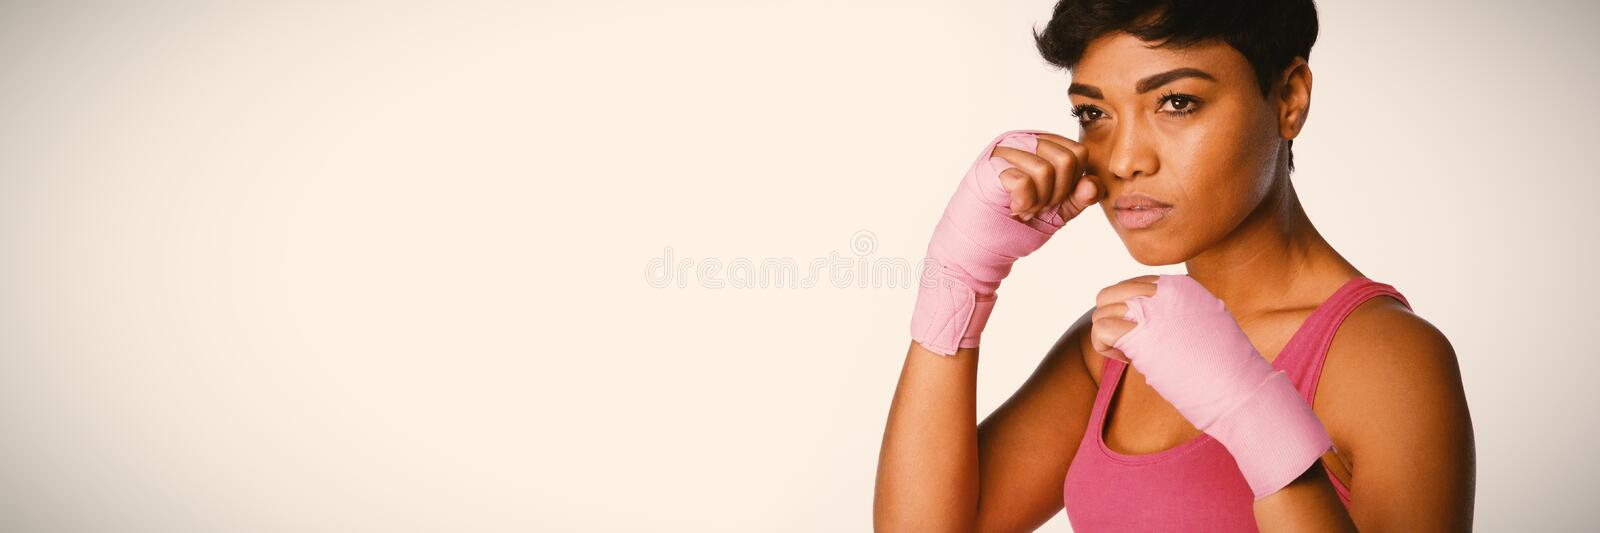 Serious looking woman fighting against breast cancer royalty free stock photo